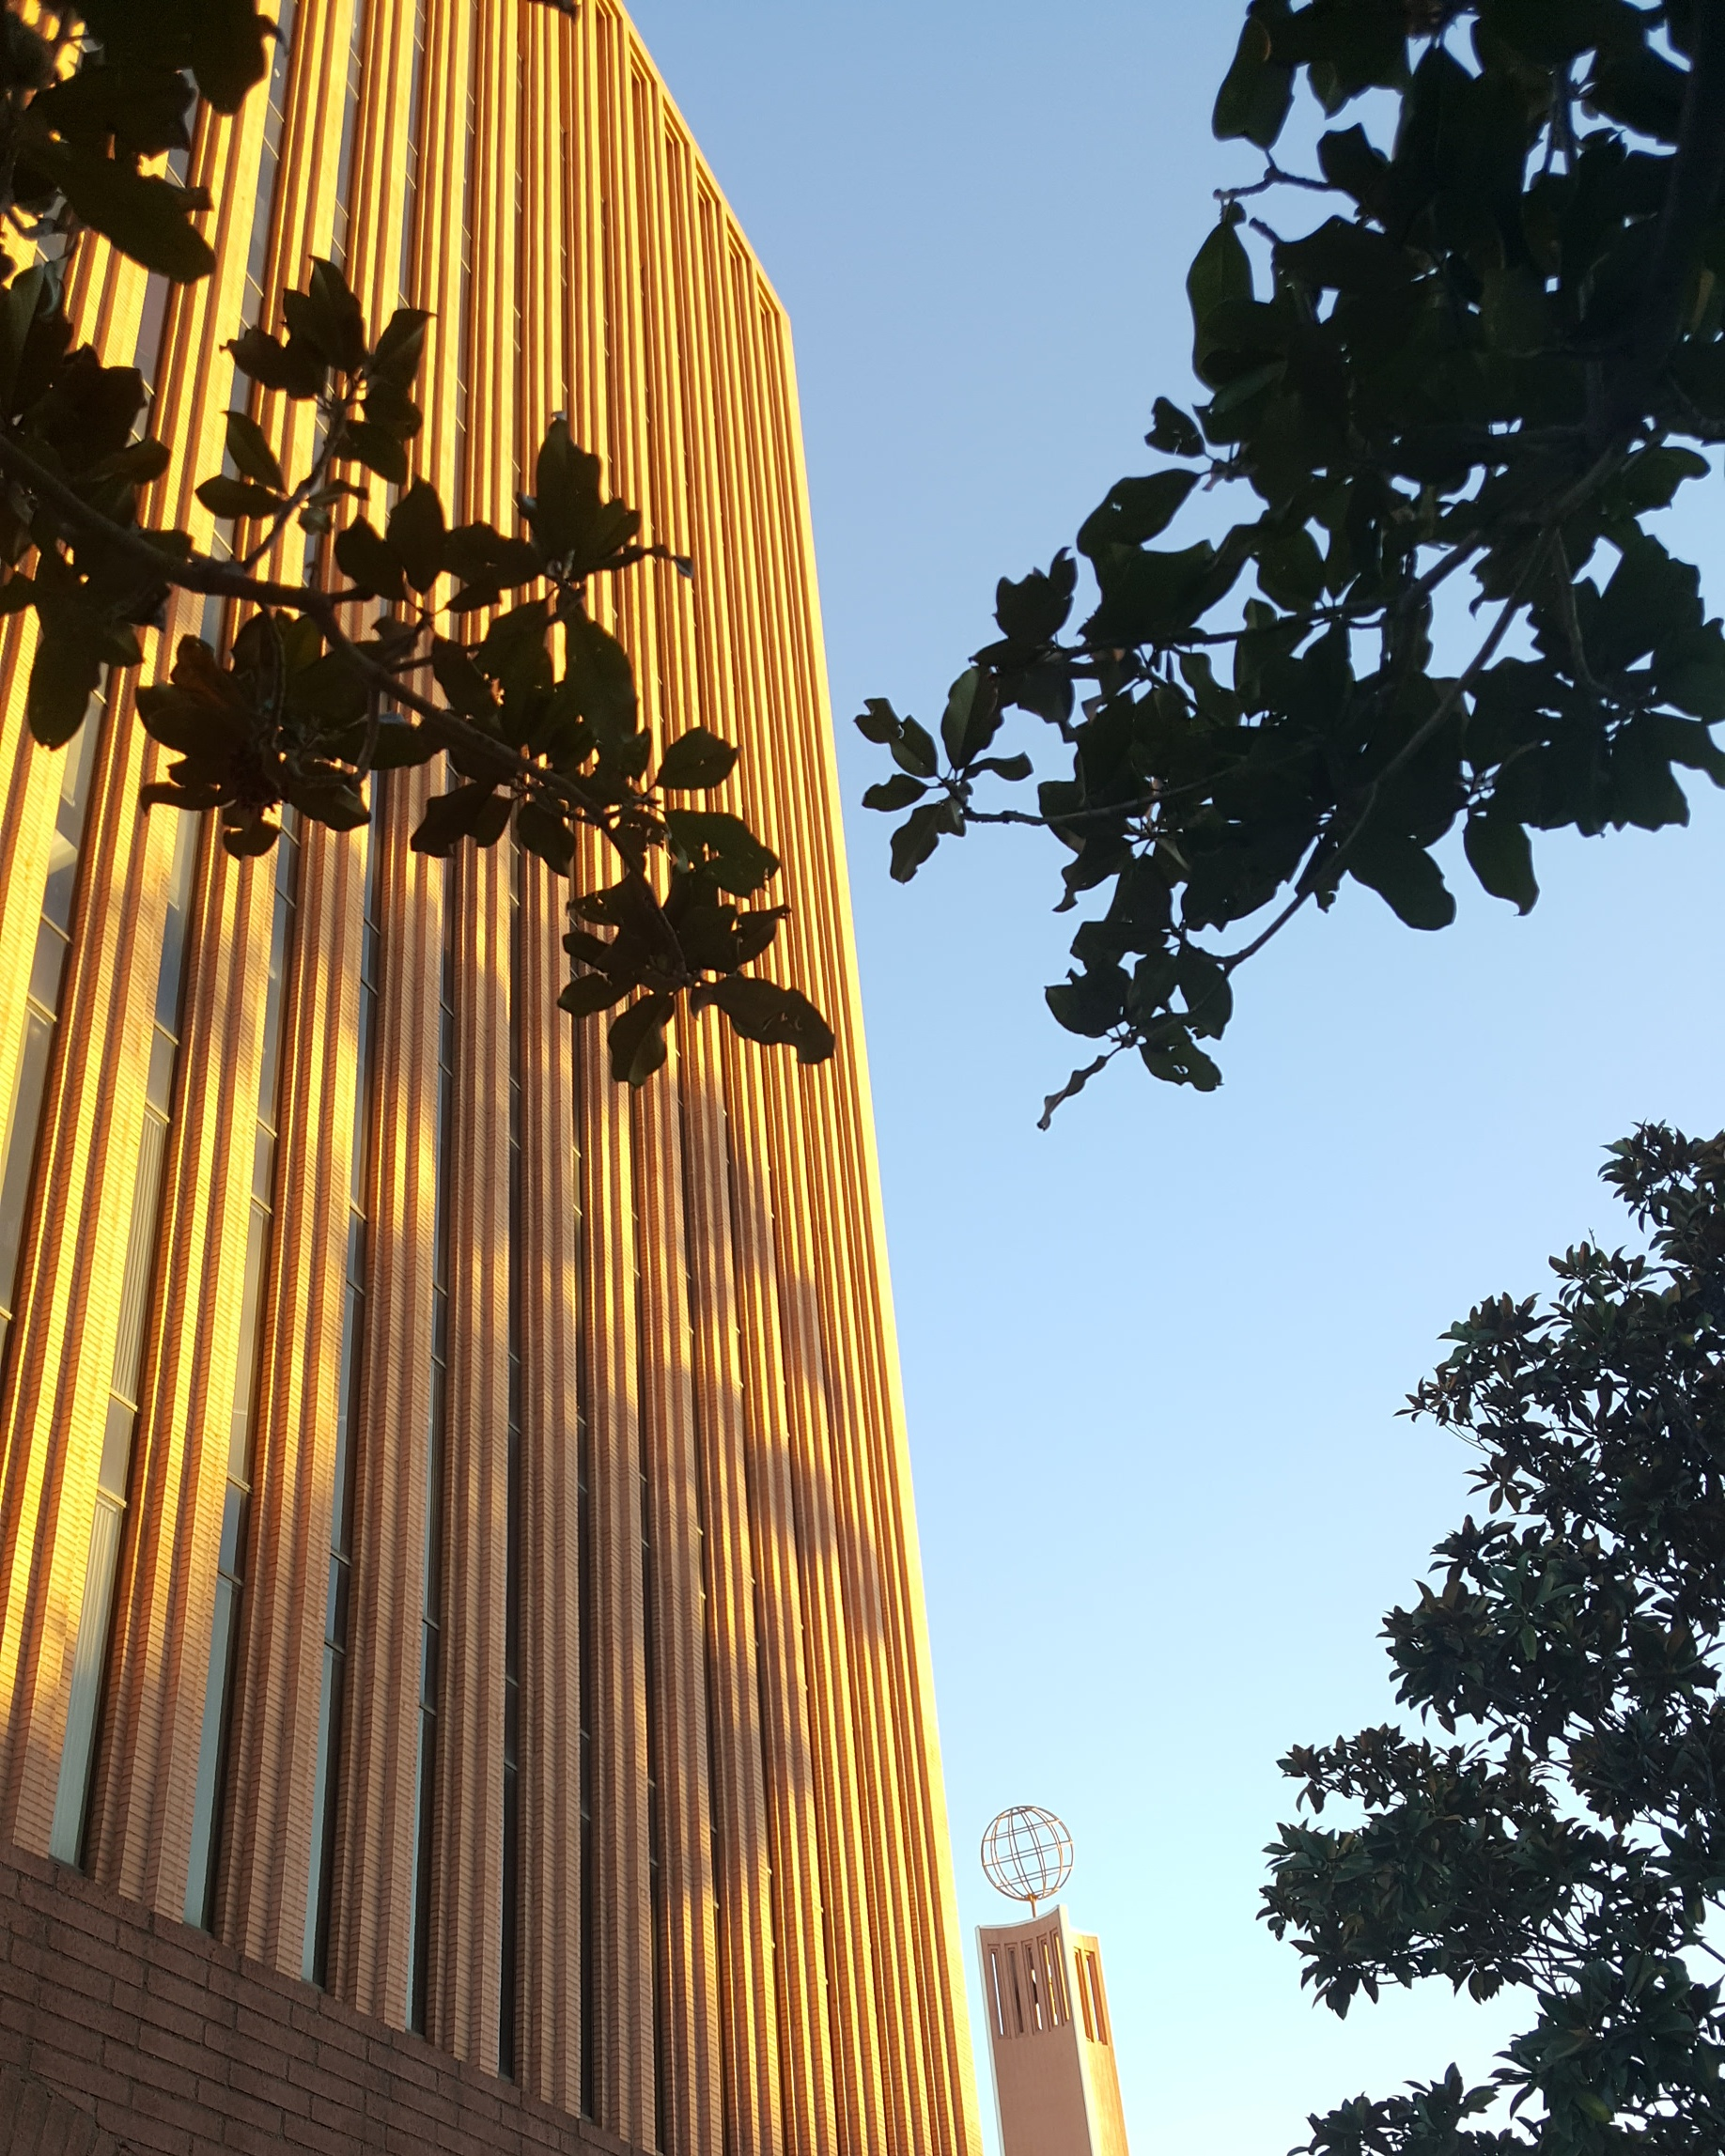 Location - Preserving the Recent Past 3 was held at the School of Architecture at the University of Southern California. Los Angeles is an ideal setting for this third Recent Past conference. California was at the forefront of twentieth century (and especially post-World War II) building activity and experimentation, from the Case Study House program to the innovations of the aviation and aerospace industries. More recently, the region has been a leader in assessing, conserving, and advocating for the protection of its postwar legacy.